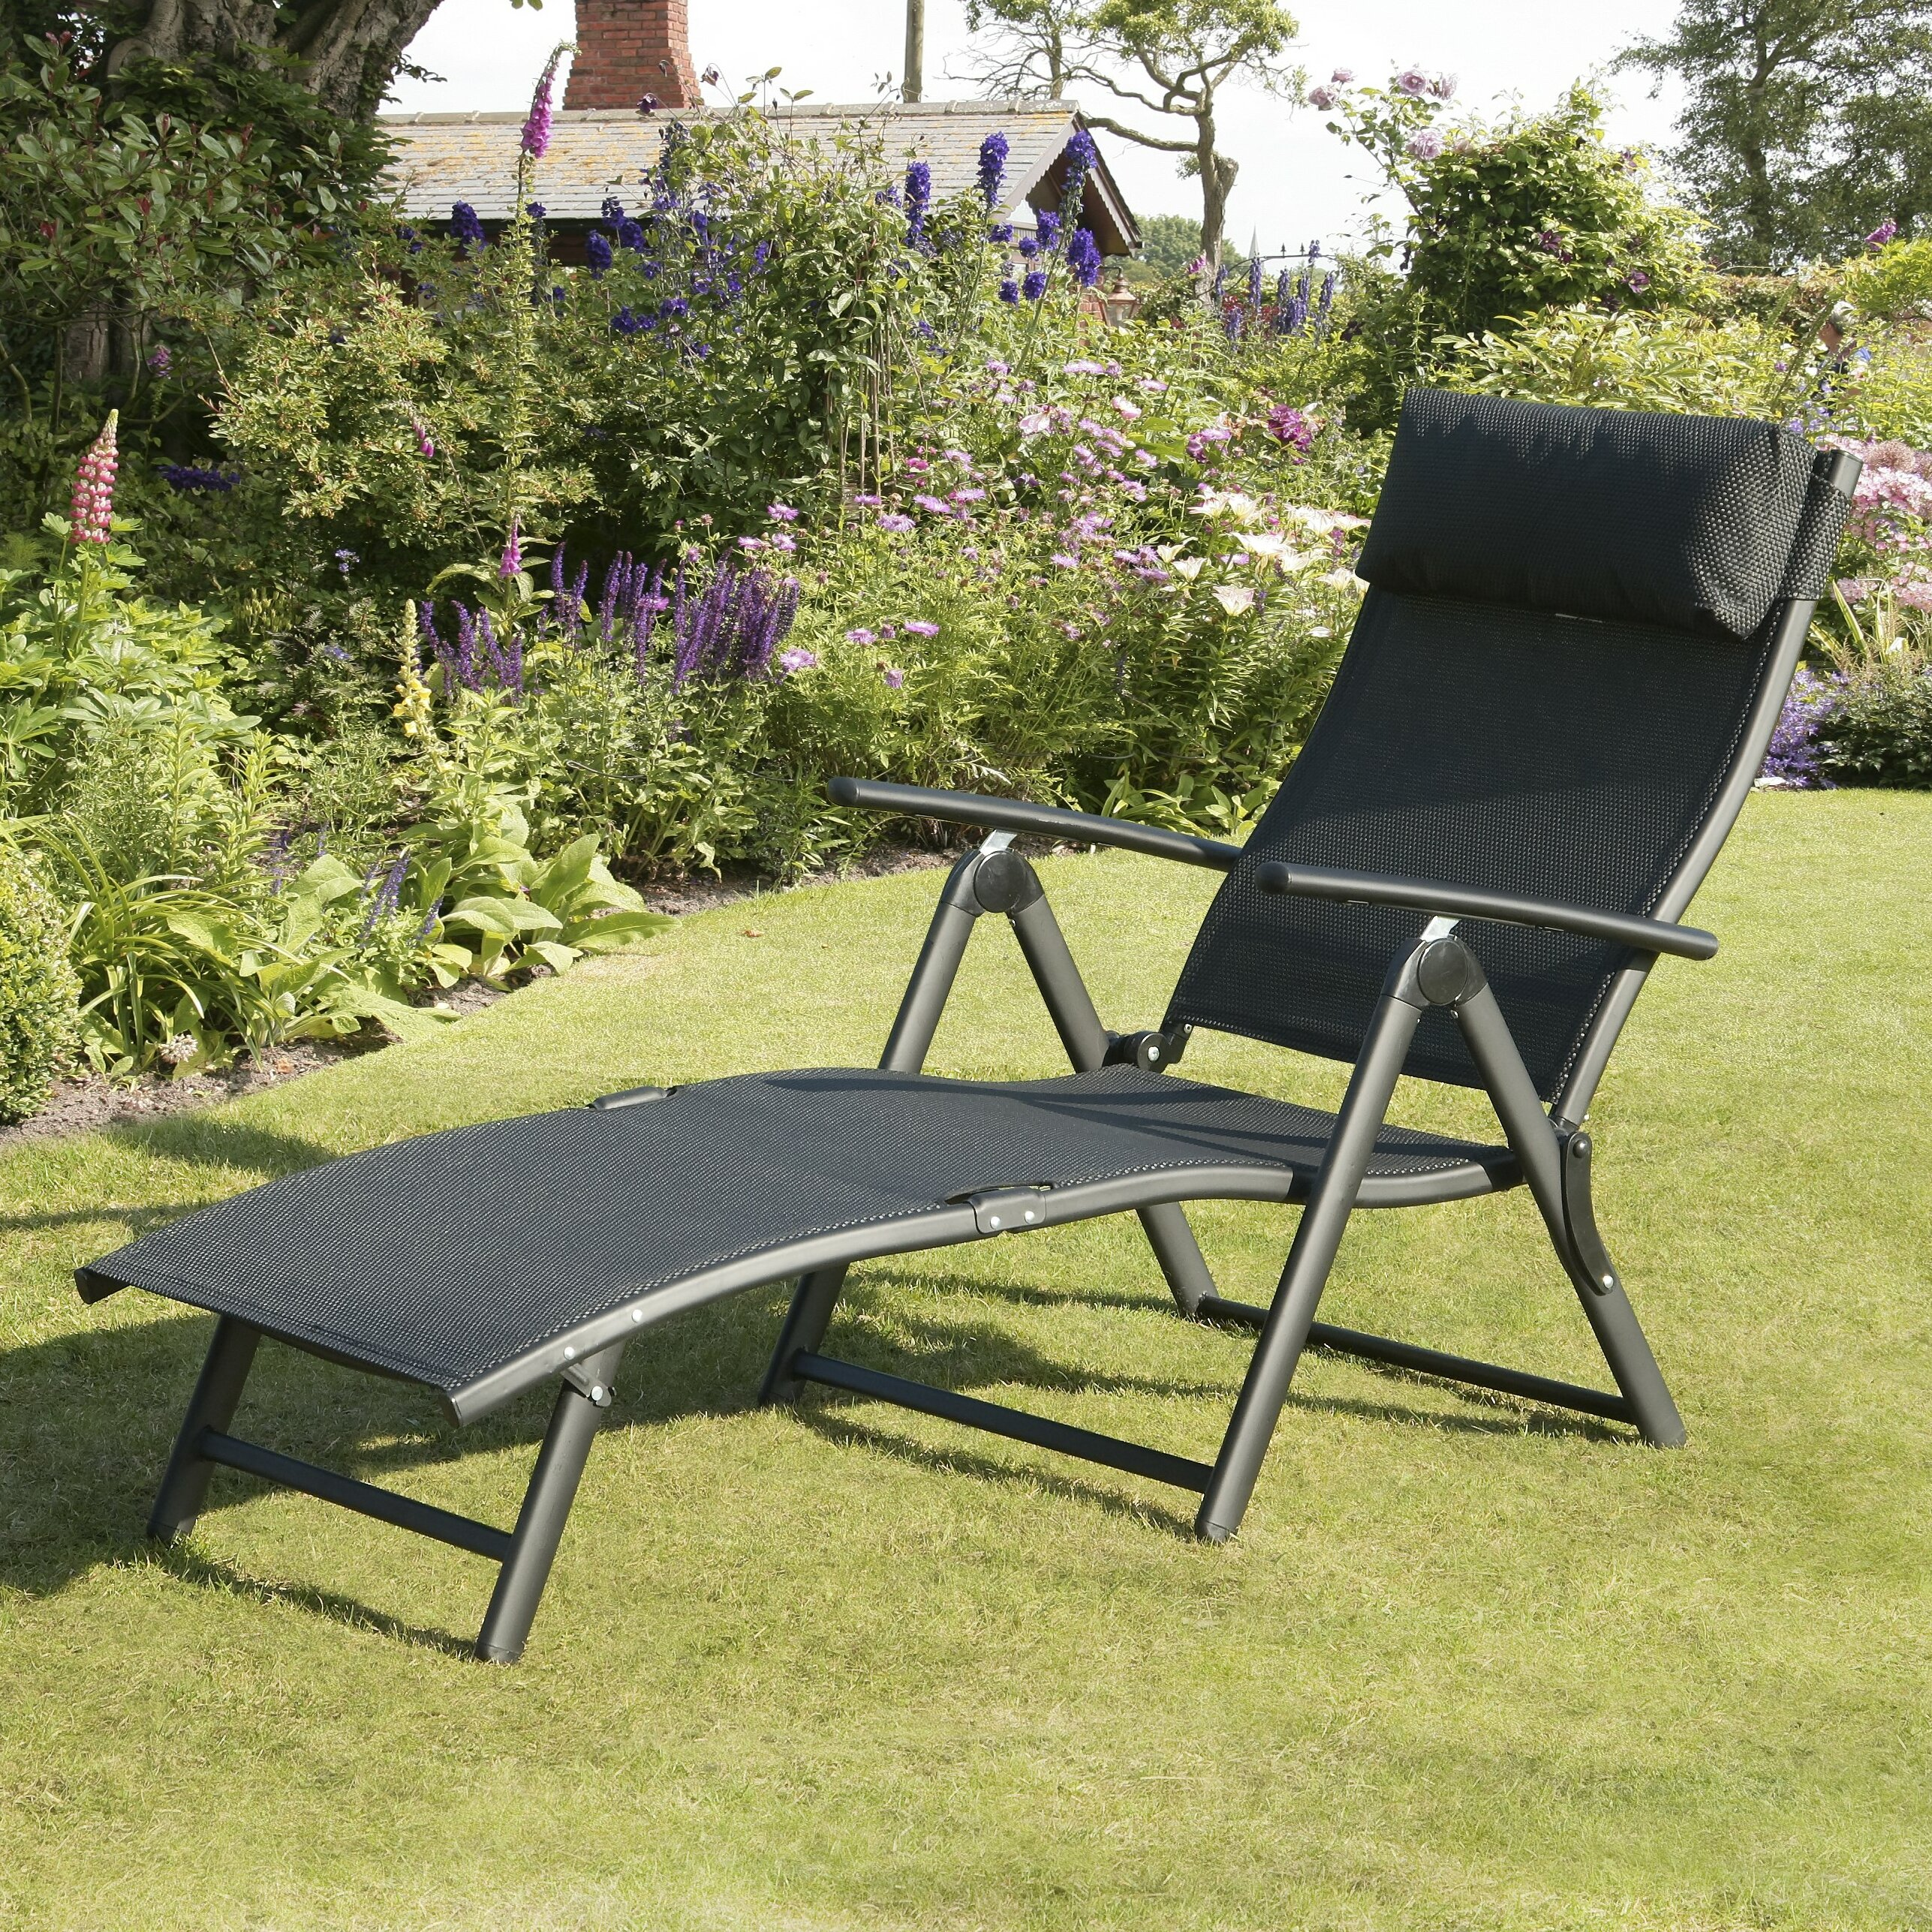 SunTime Outdoor Living Havana Chaise Lounge & Reviews